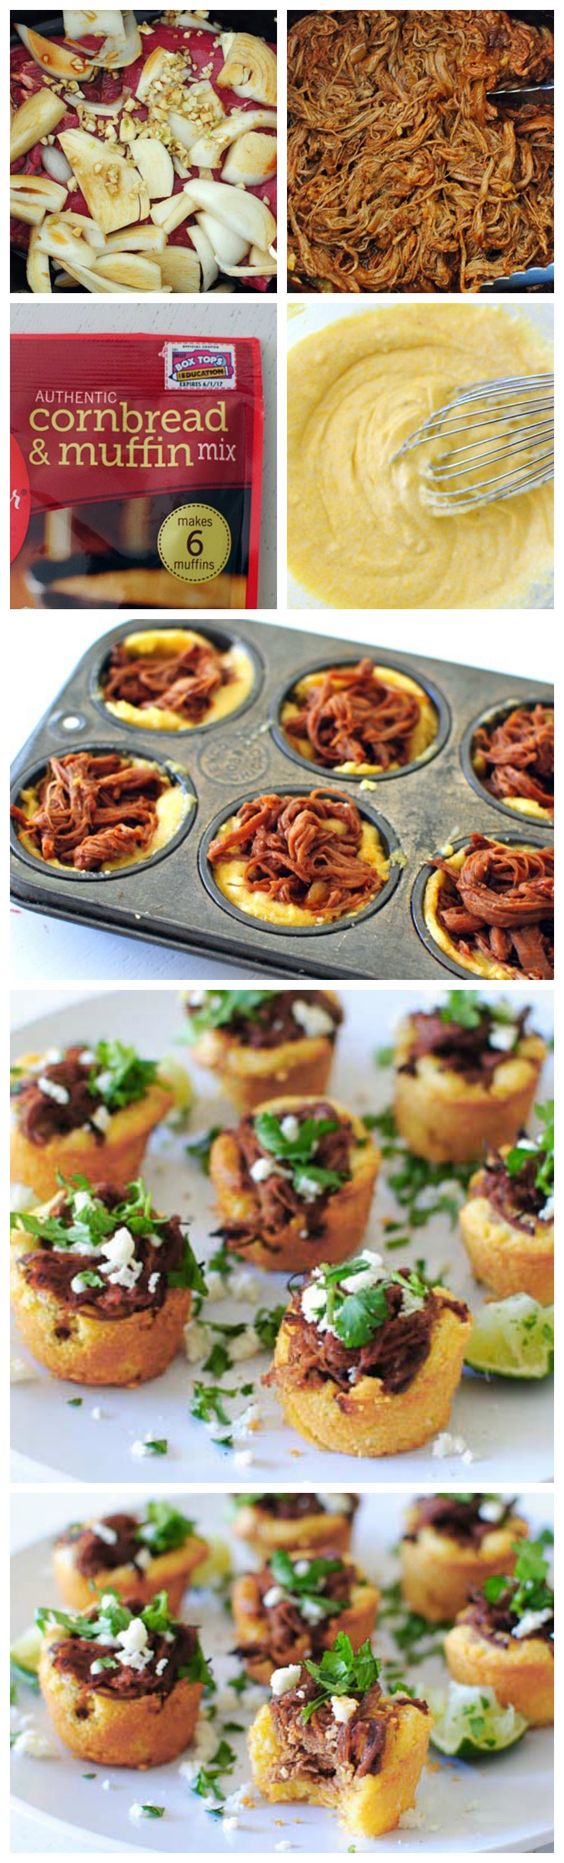 Steak and Cornbread Tamale Bites | Recipe | Tamales, Cornbread and ...